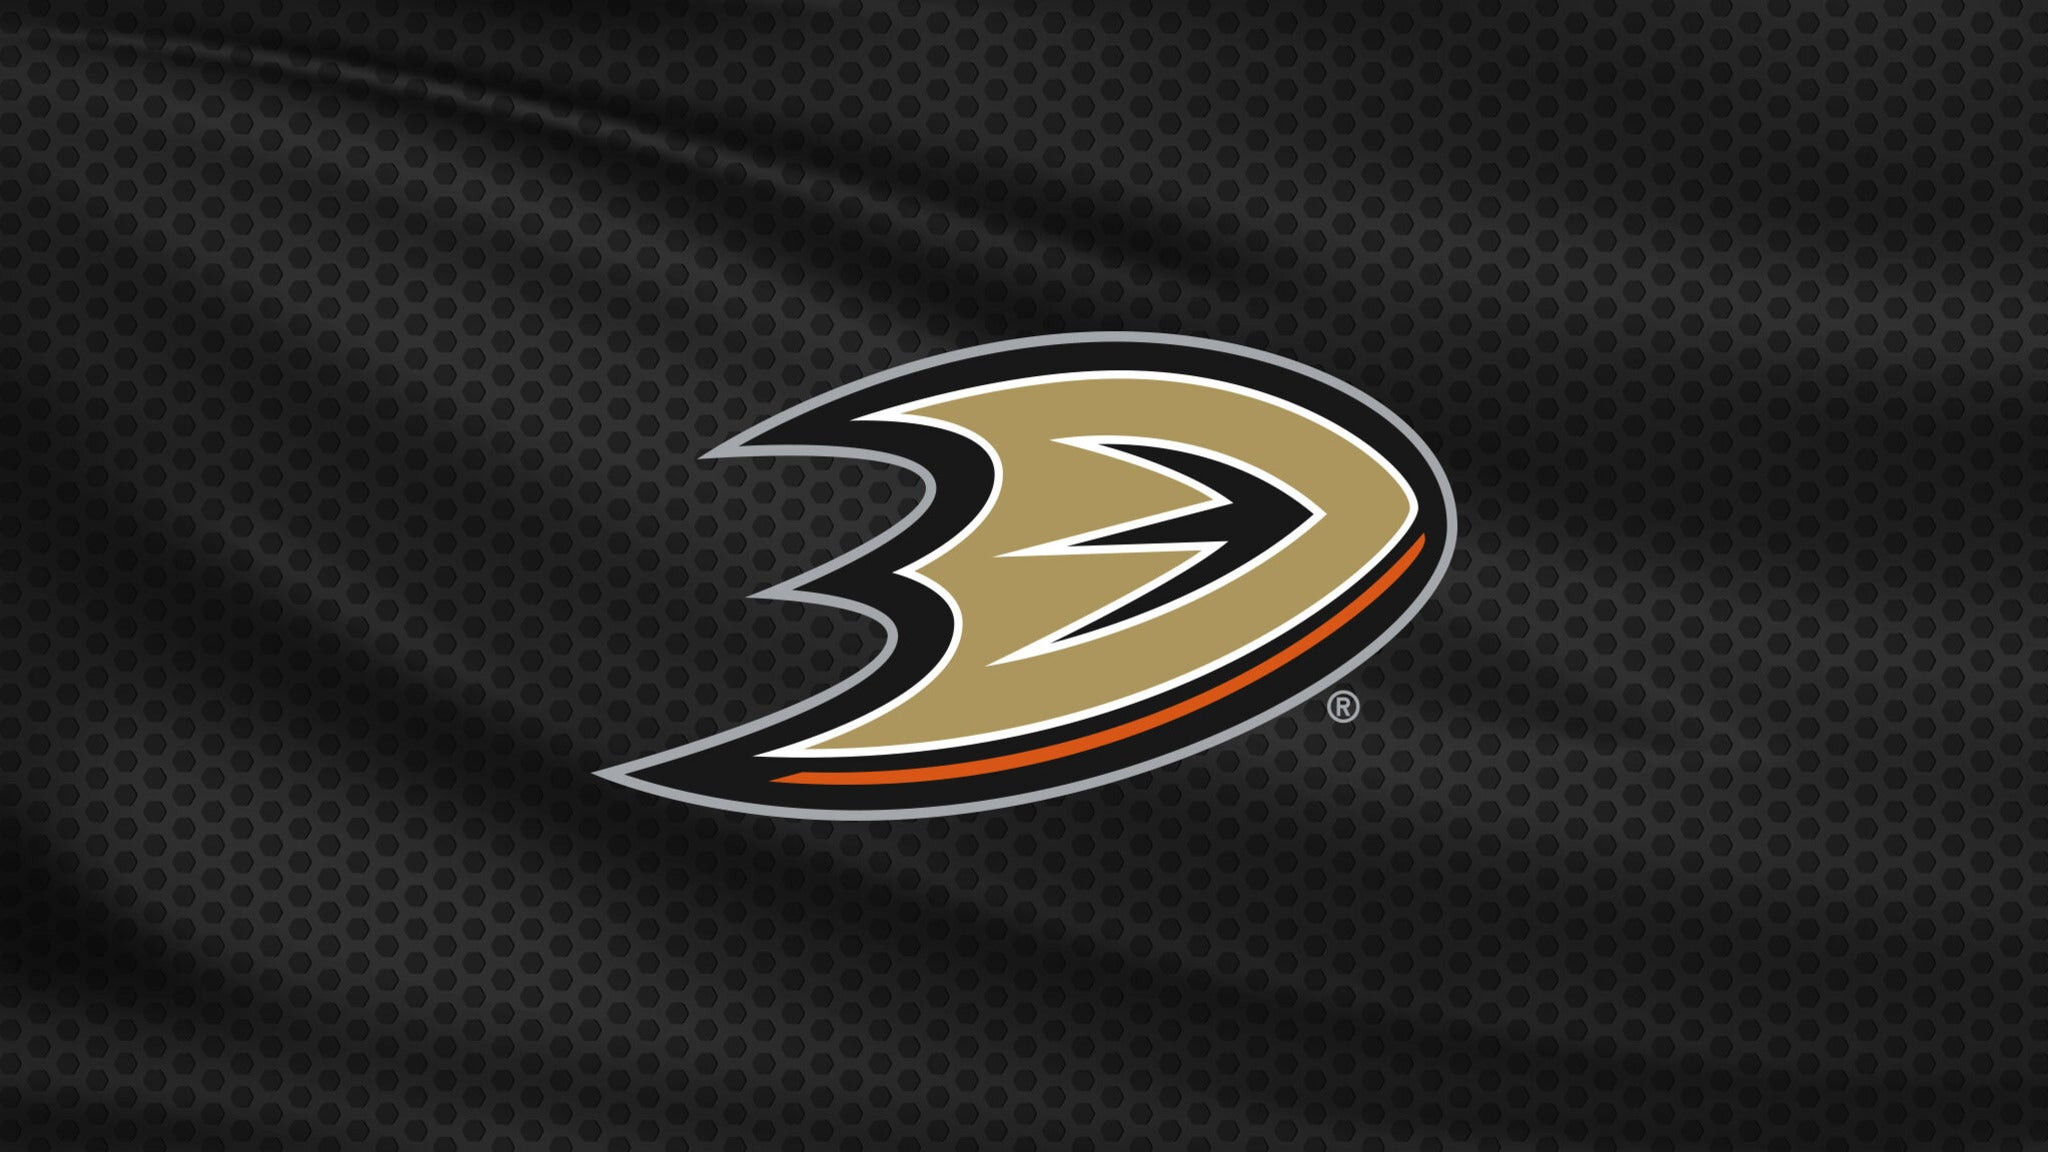 Anaheim Ducks vs. Vegas Golden Knights at Honda Center